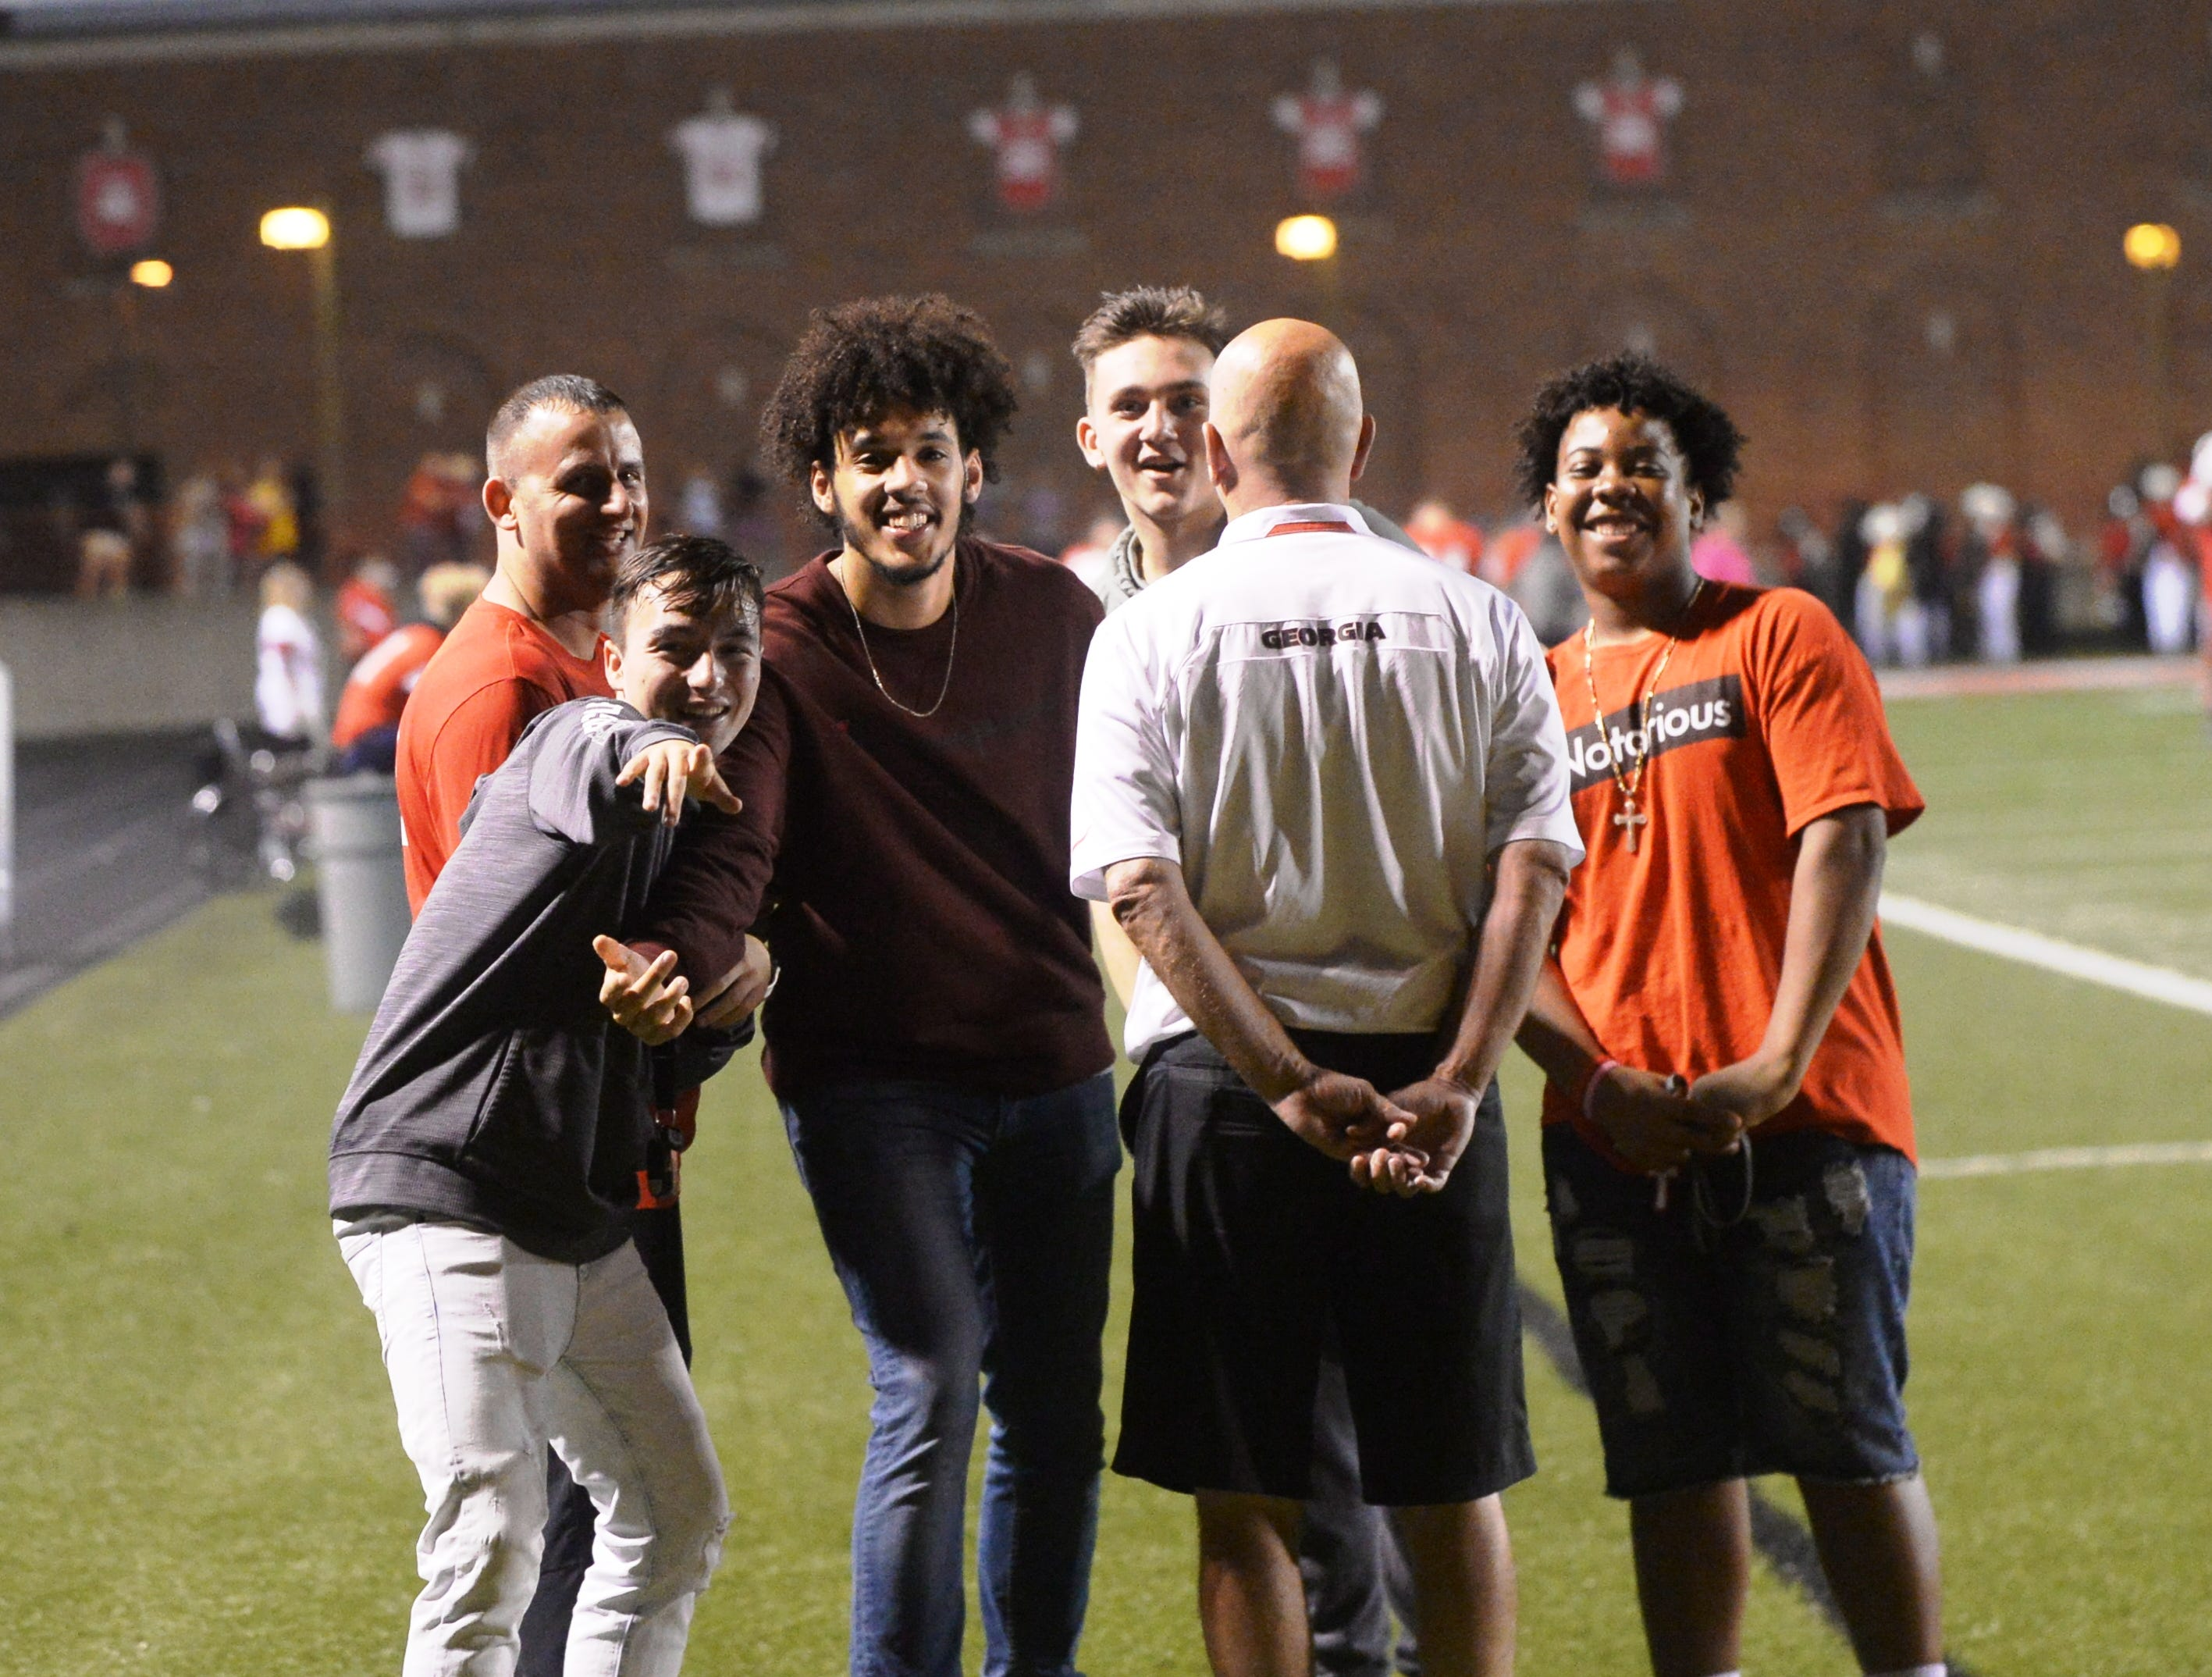 Members of the Richmond High School basketball team smile on the sidelines during a 27-26 football loss to Anderson Friday, Oct. 5, 2018 at Lyboult Field.